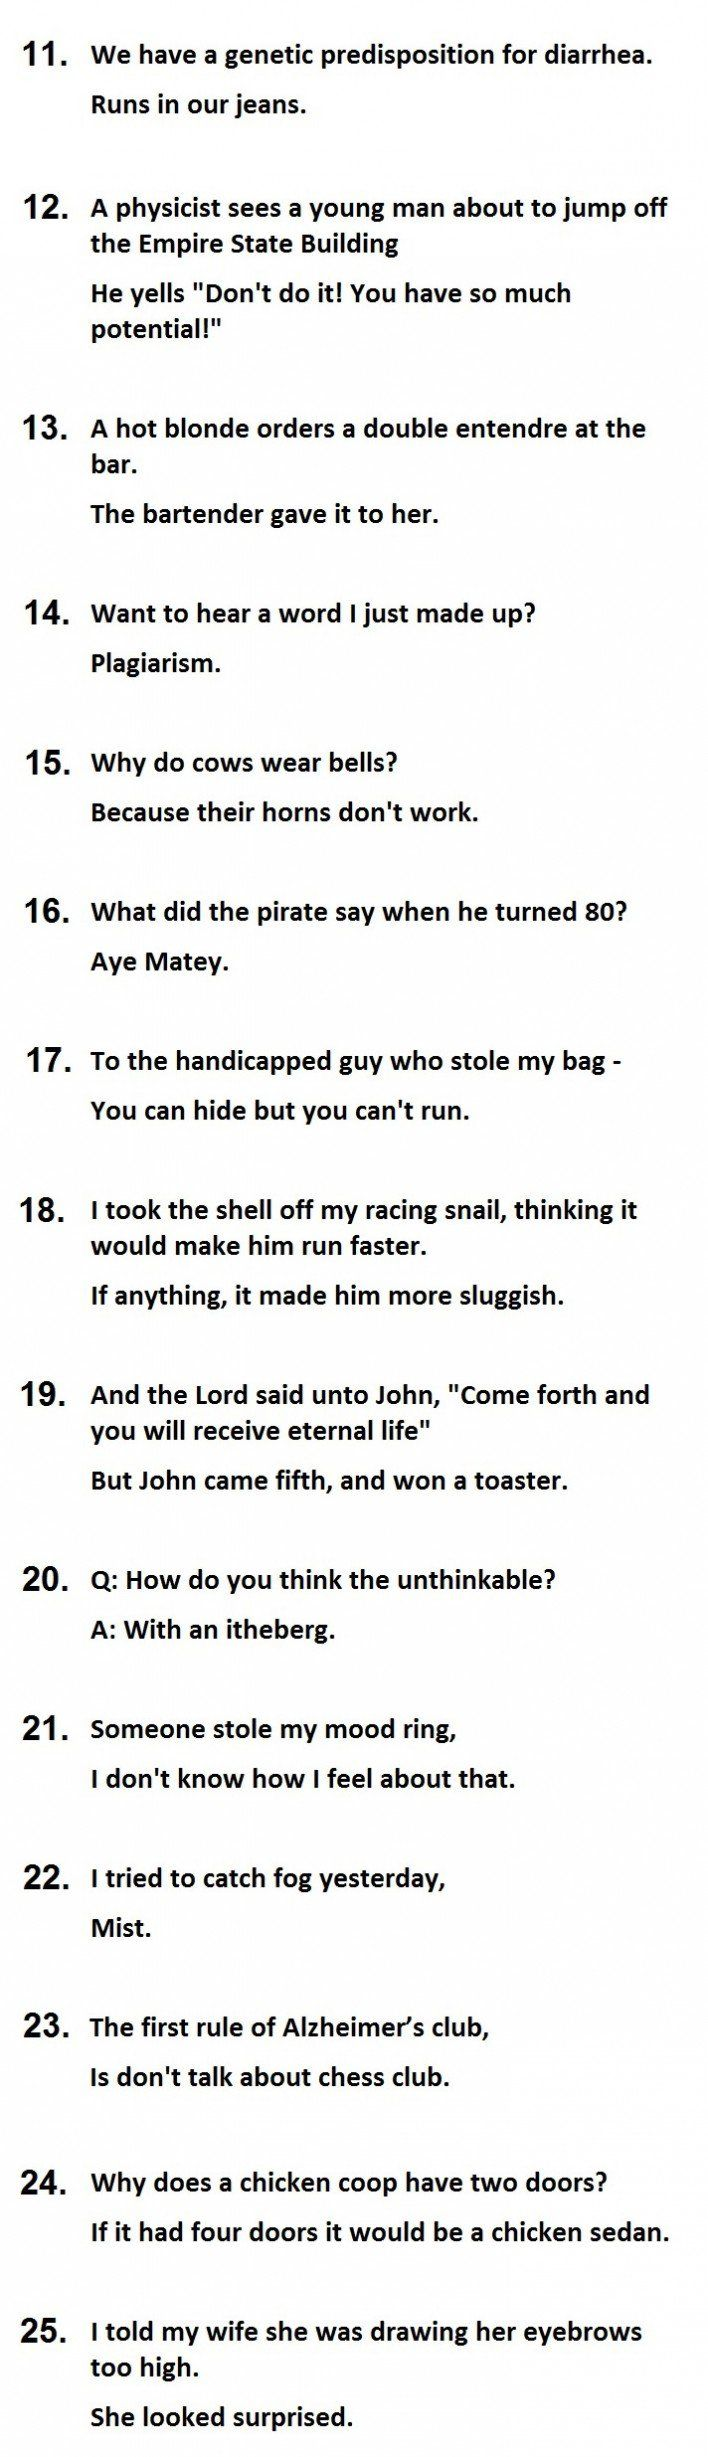 The 25 Best Two-Line Jokes Ever. #14 Is Priceless.   Humor ...